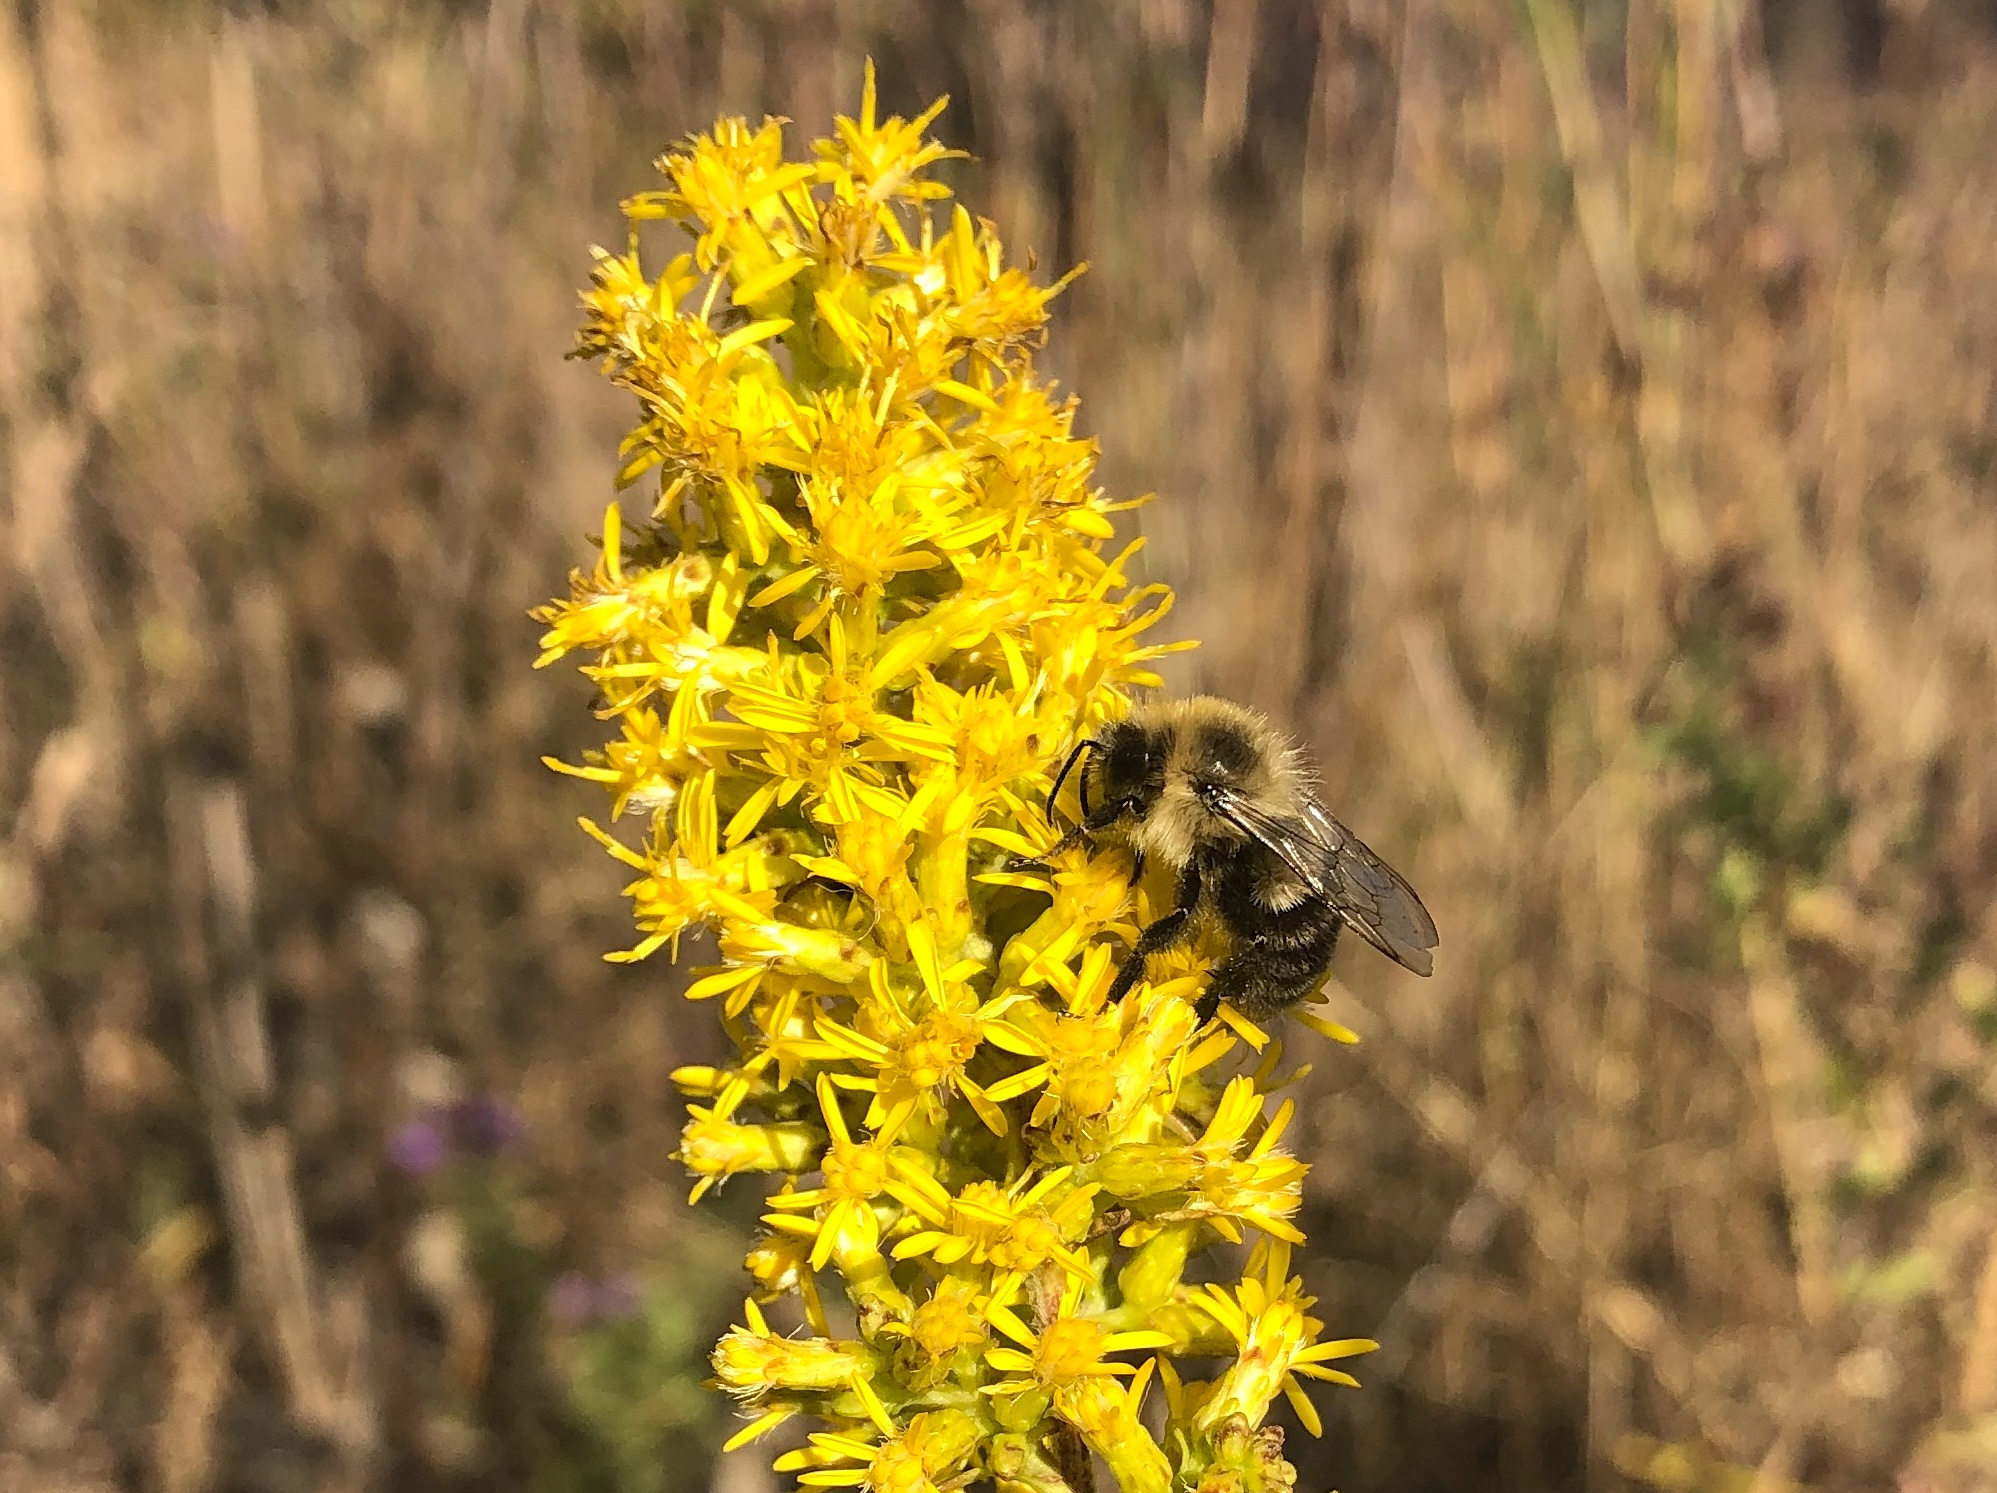 Bumblebee on Showy Goldenrod on October 13, 2020.